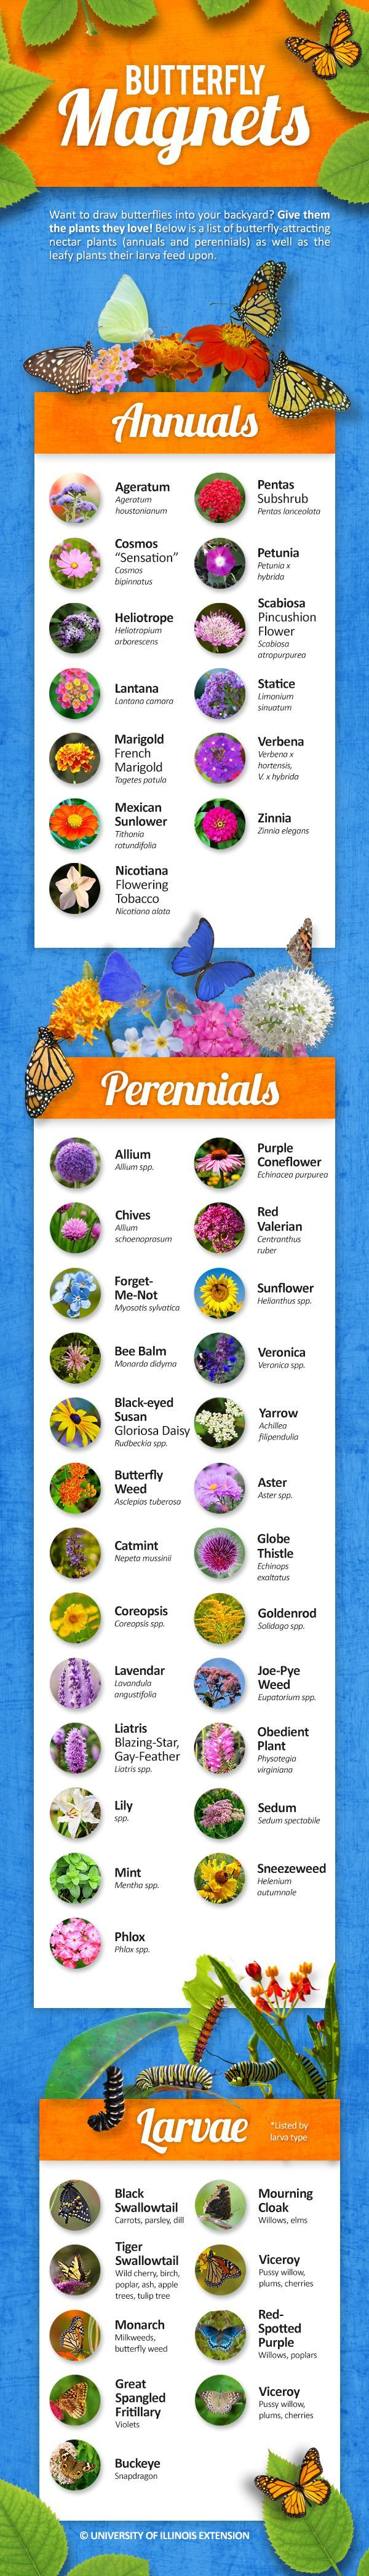 Want more butterflies in your yard? Plant the nectar plants they love! Here's a great list of butterfly-attracting annual and perennial plants.